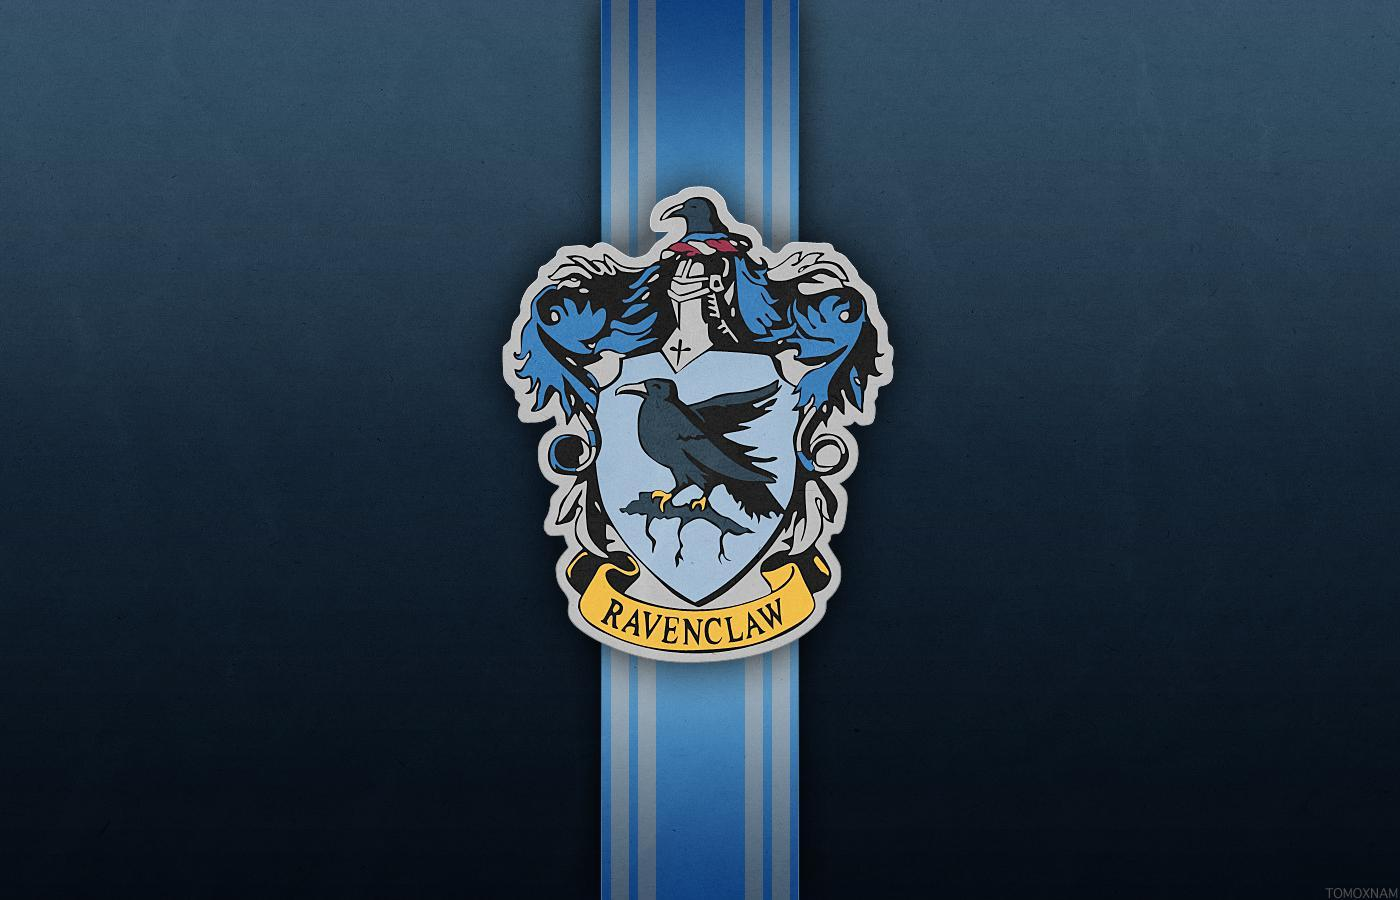 hogwarts ravenclaw wallpaper for mac - photo #35